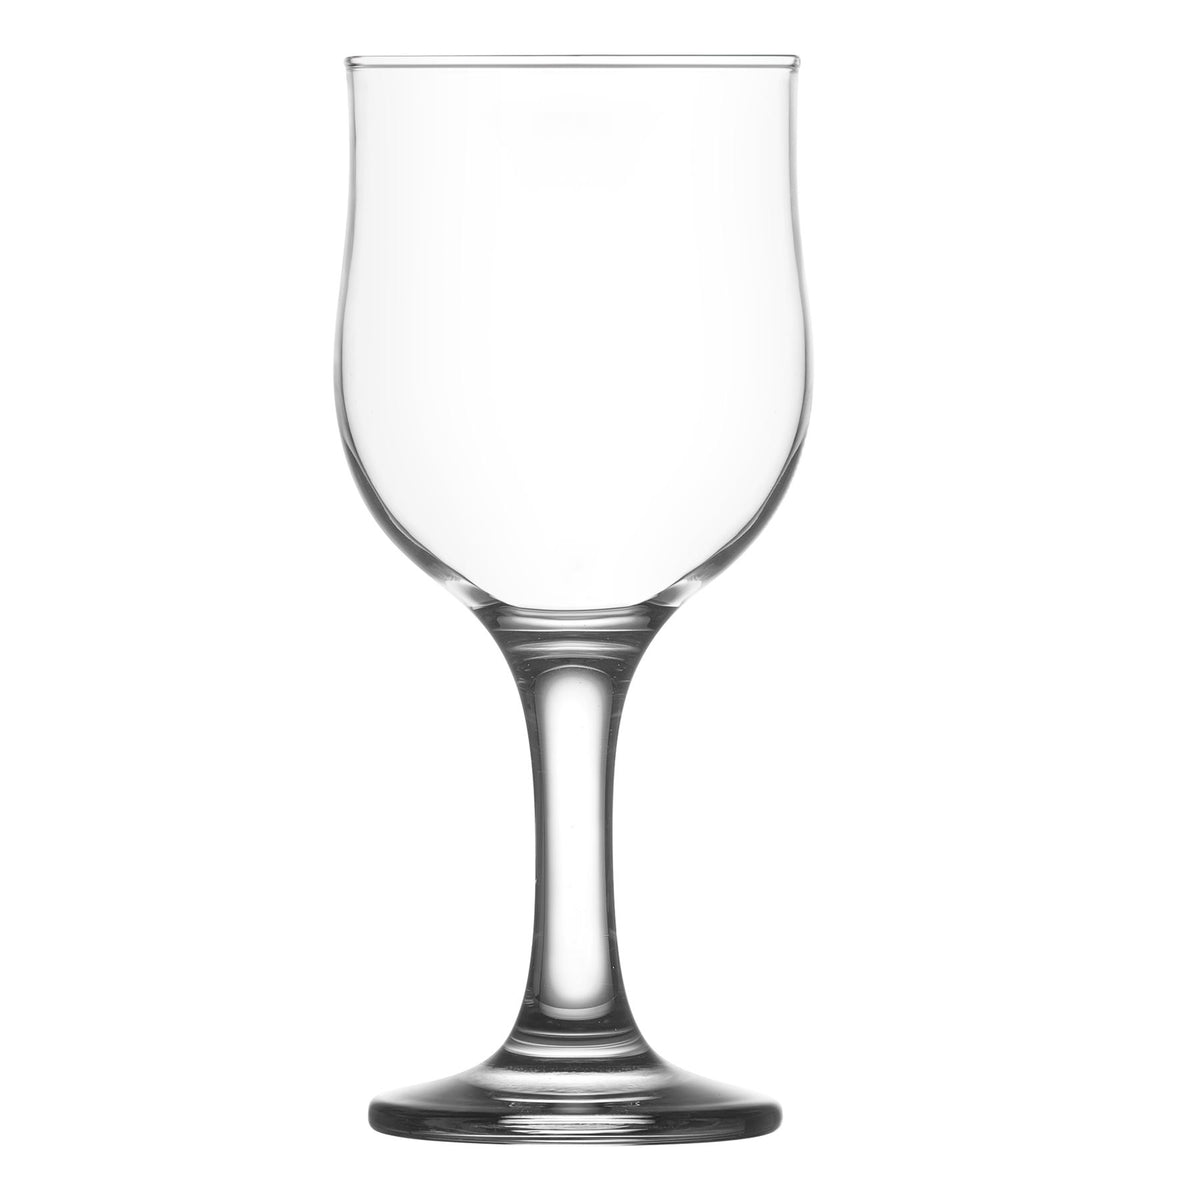 LAV Nevakar Large Chalice Wine Glass - 355ml